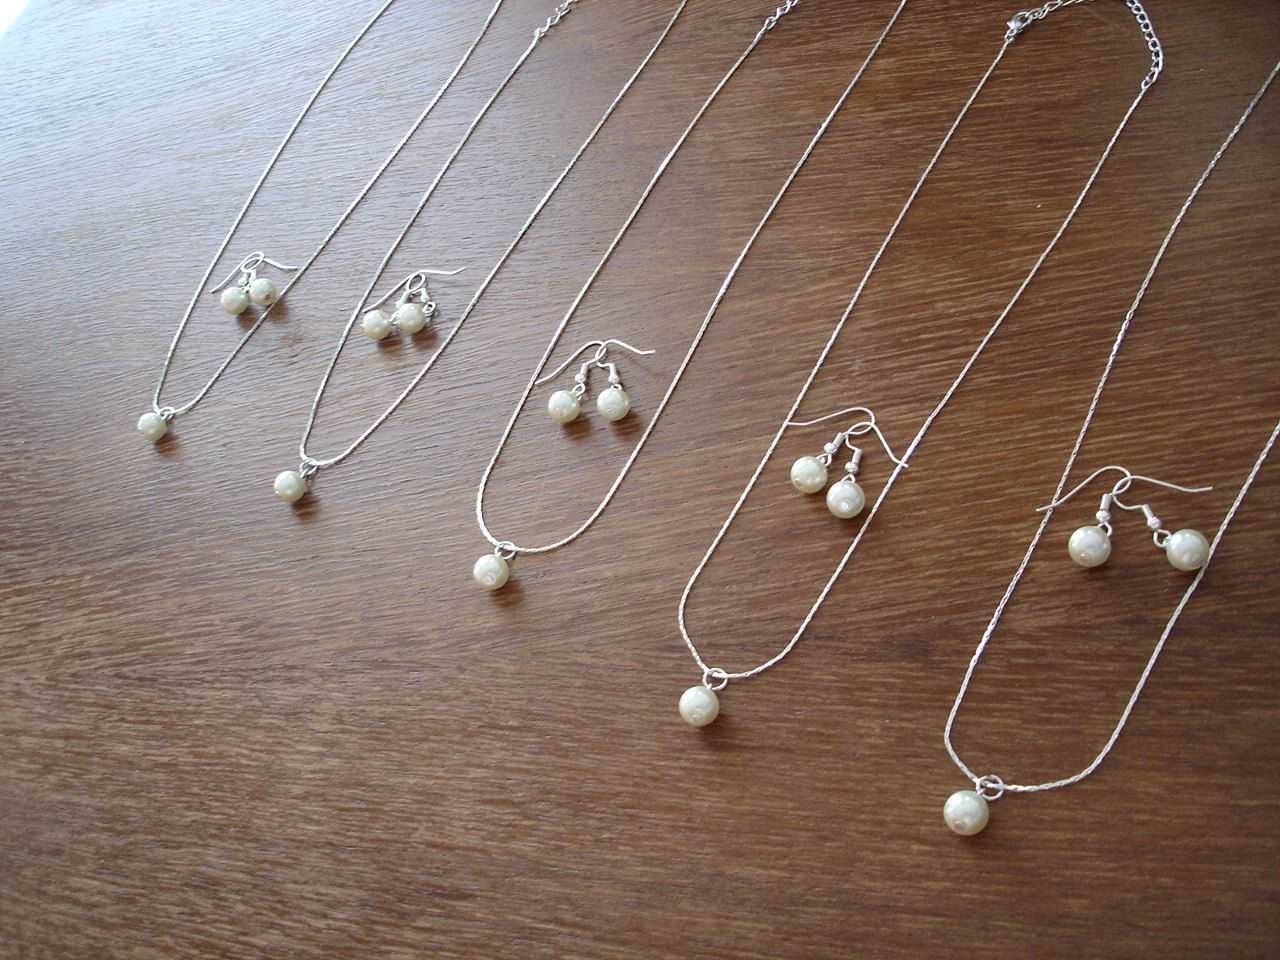 5 Bridesmaid Single Pearl Jewelry Sets Necklace and Earrings